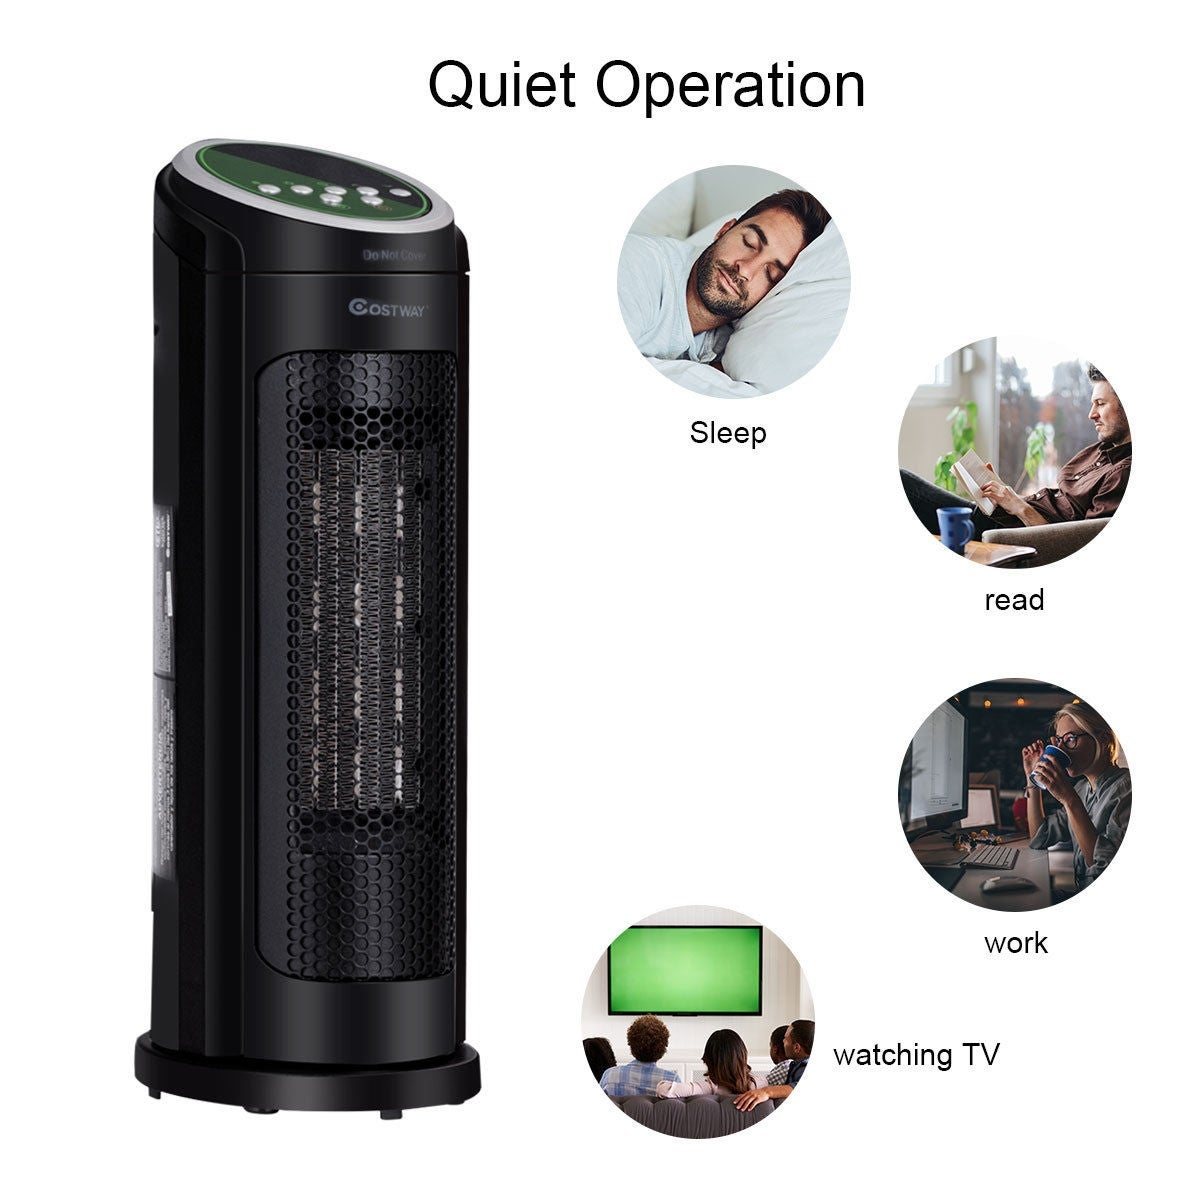 6e447dde61a Shop Costway Portable Oscillating PTC Ceramic Space Heater 1500W LED 12H  Timer Remote Control - Black - On Sale - Free Shipping Today - Overstock -  24317478